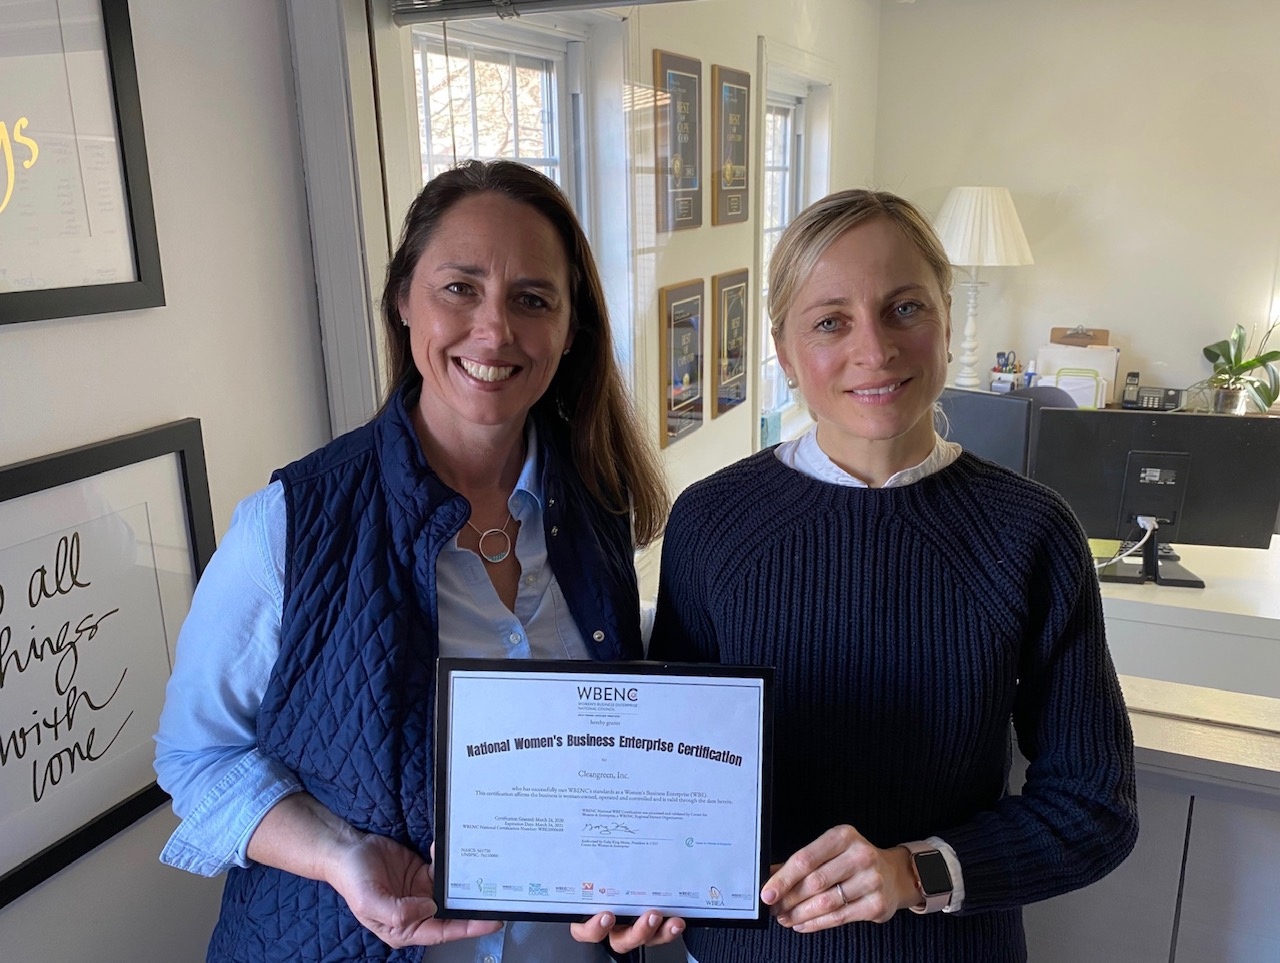 Cleangreen's Annette Contonio and Jitka Borowick hold the company's Women's Business Enterprise certificate.